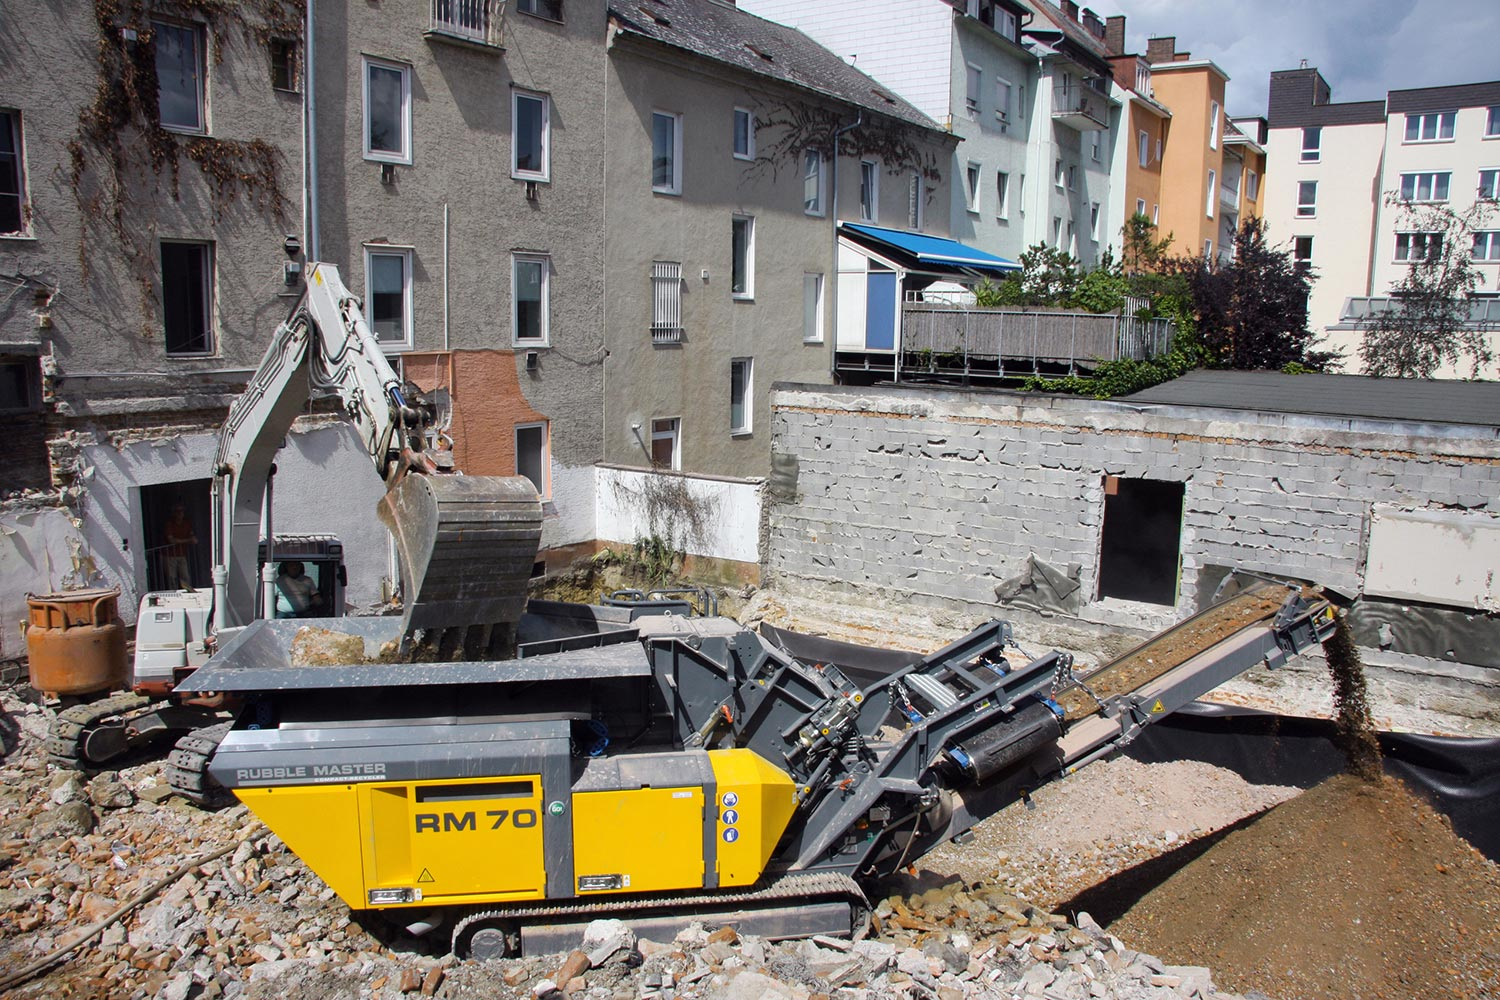 MHM RM Rubble Master Compact Crushing RM70GO